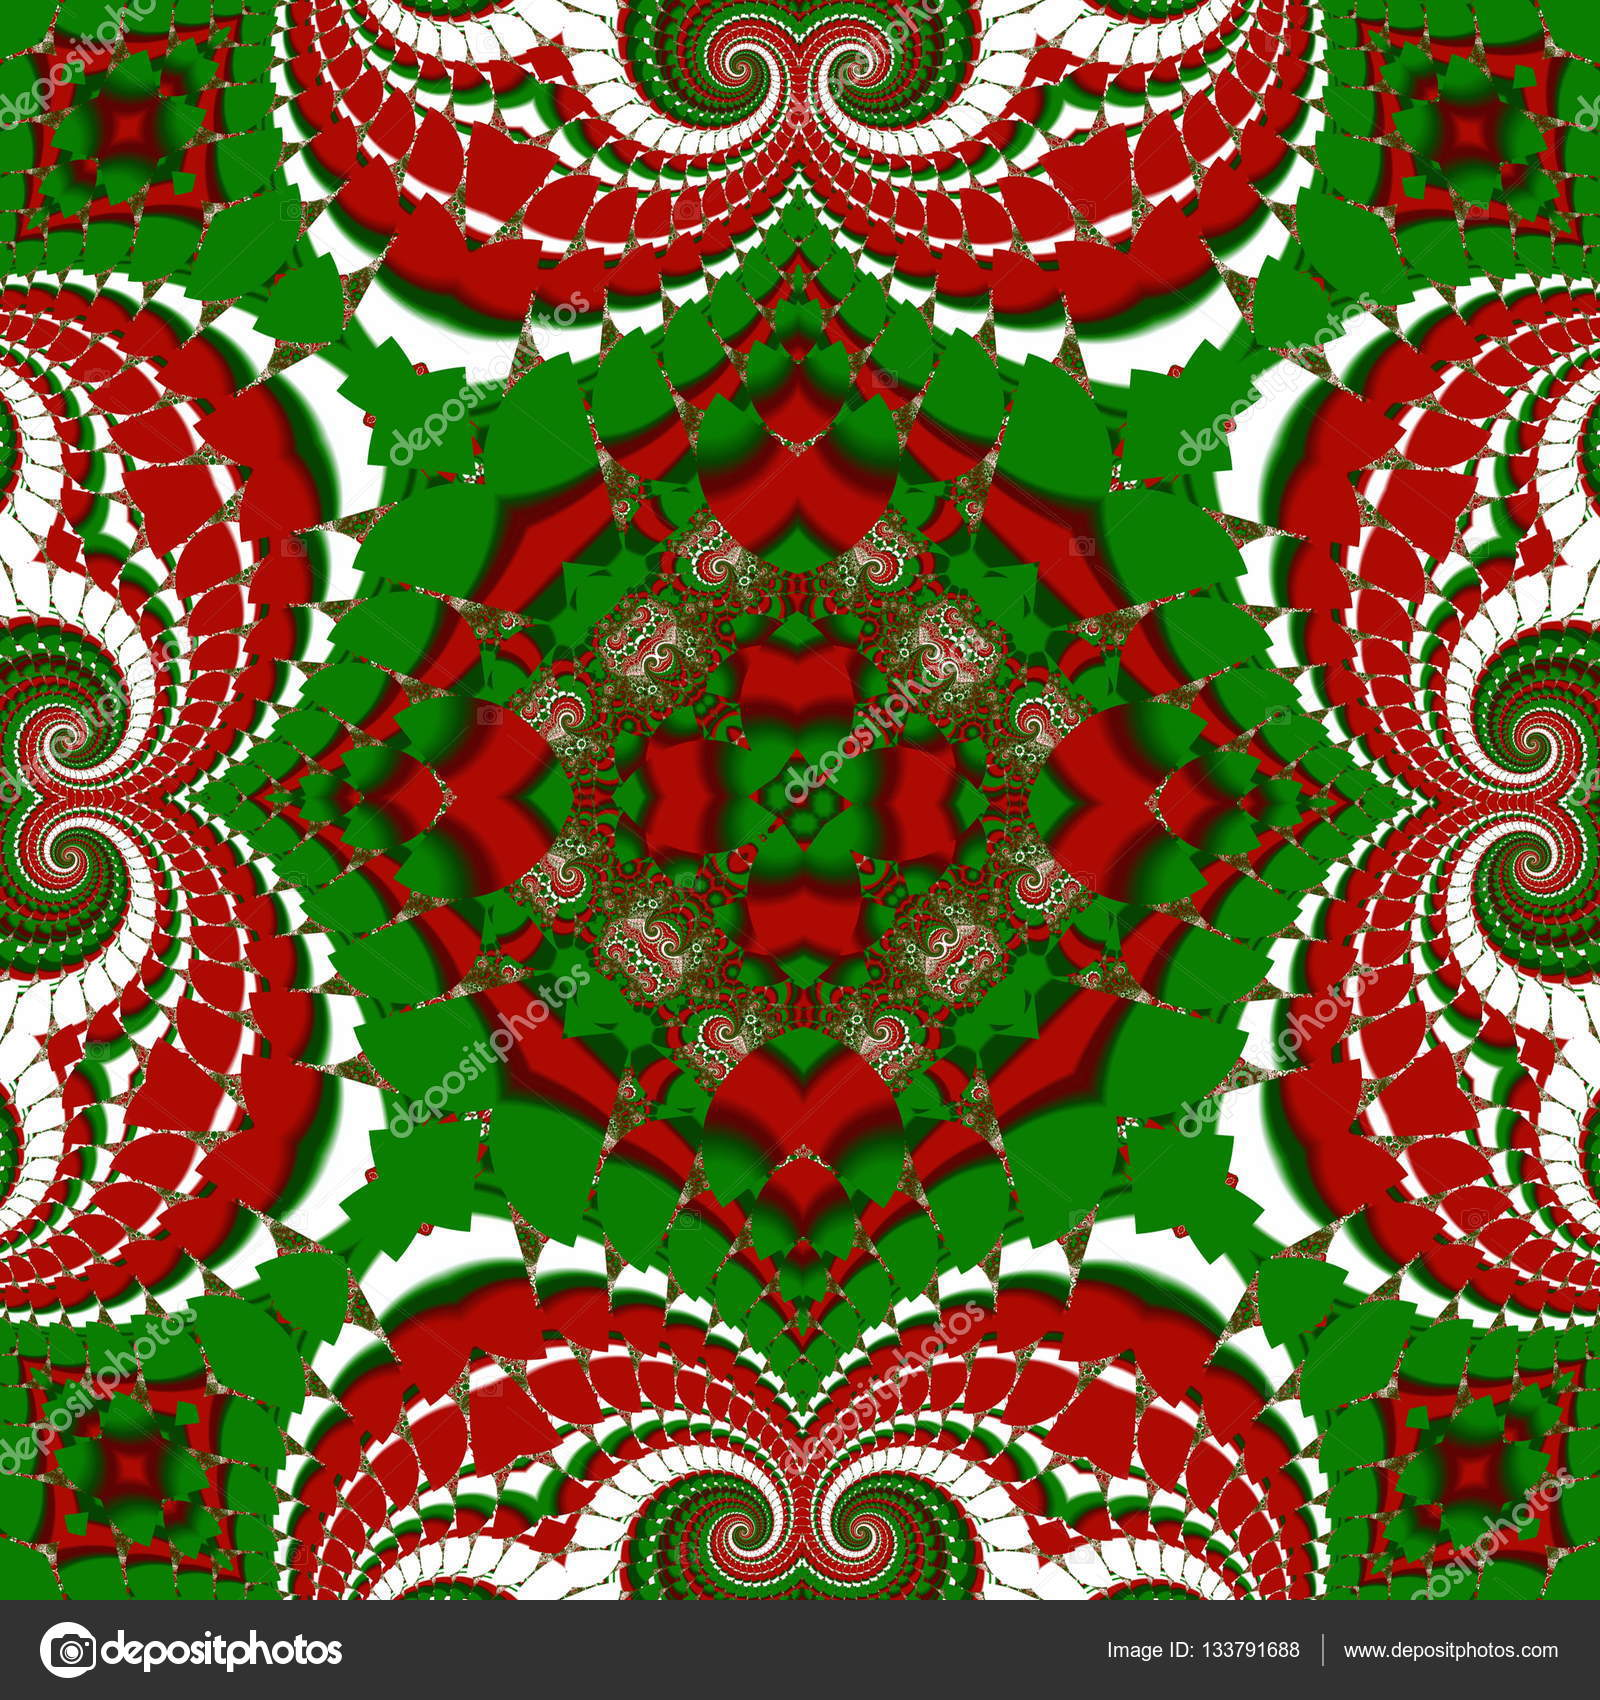 christmas pattern green red and white colors you can use it f - Why Are Red And Green Christmas Colors